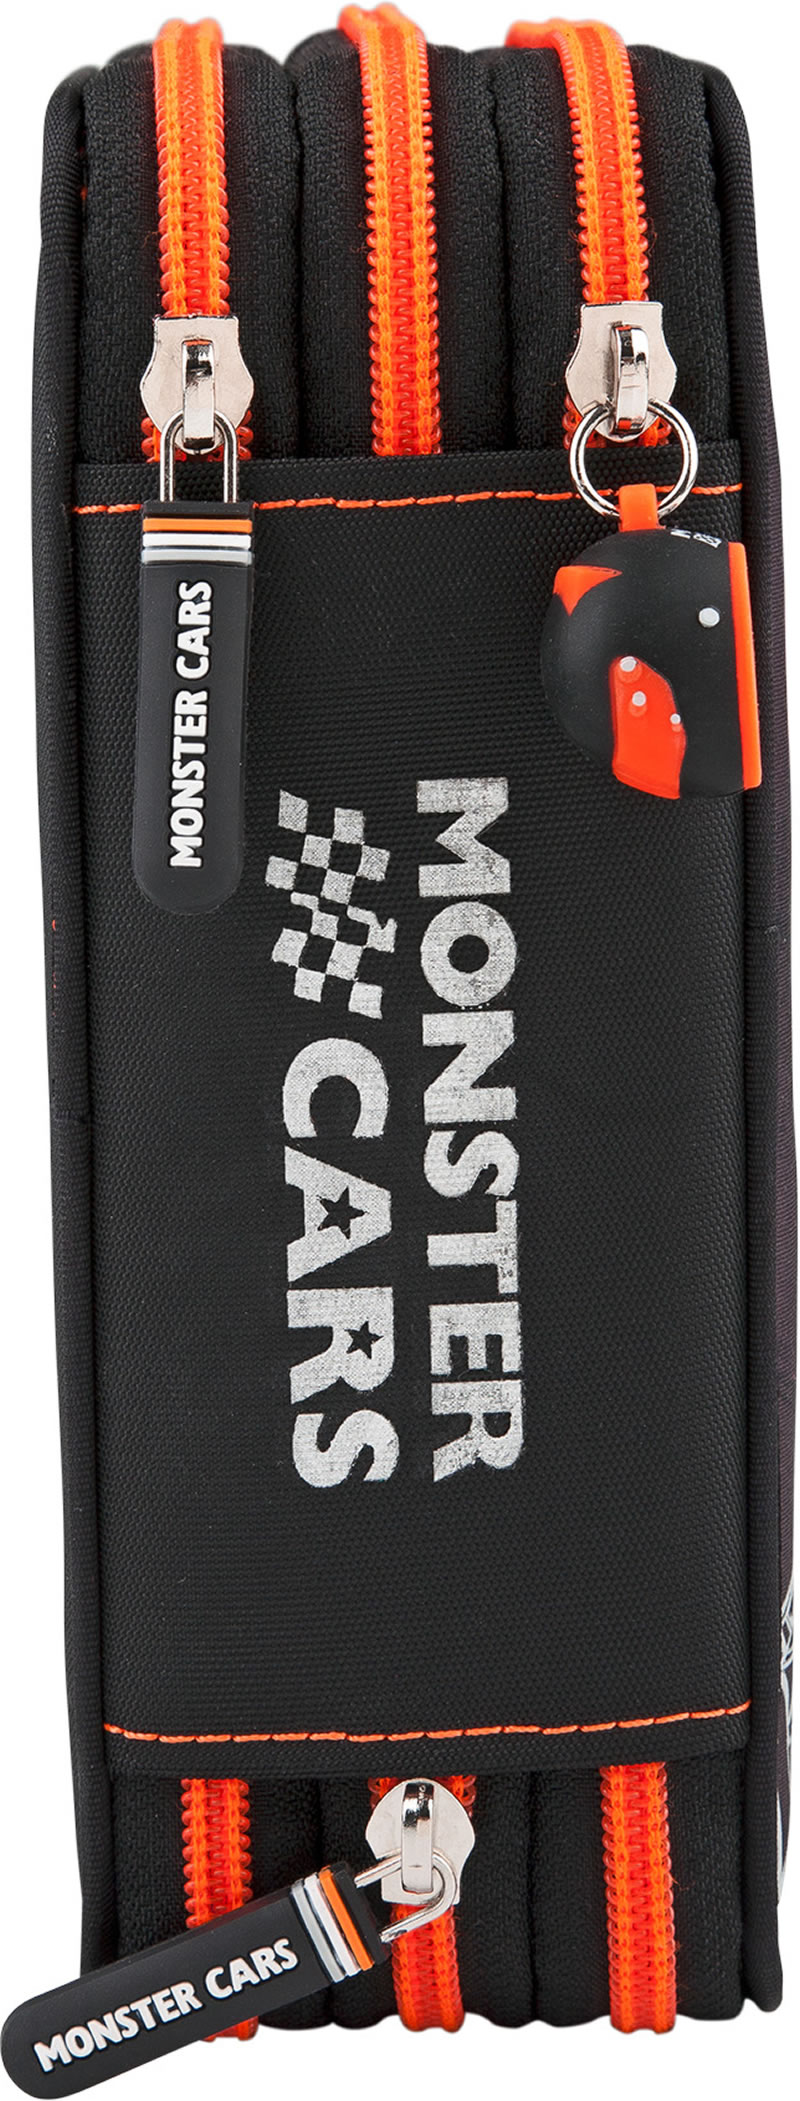 Monster Cars Pencil Case With Filling Alex Online At Papiton